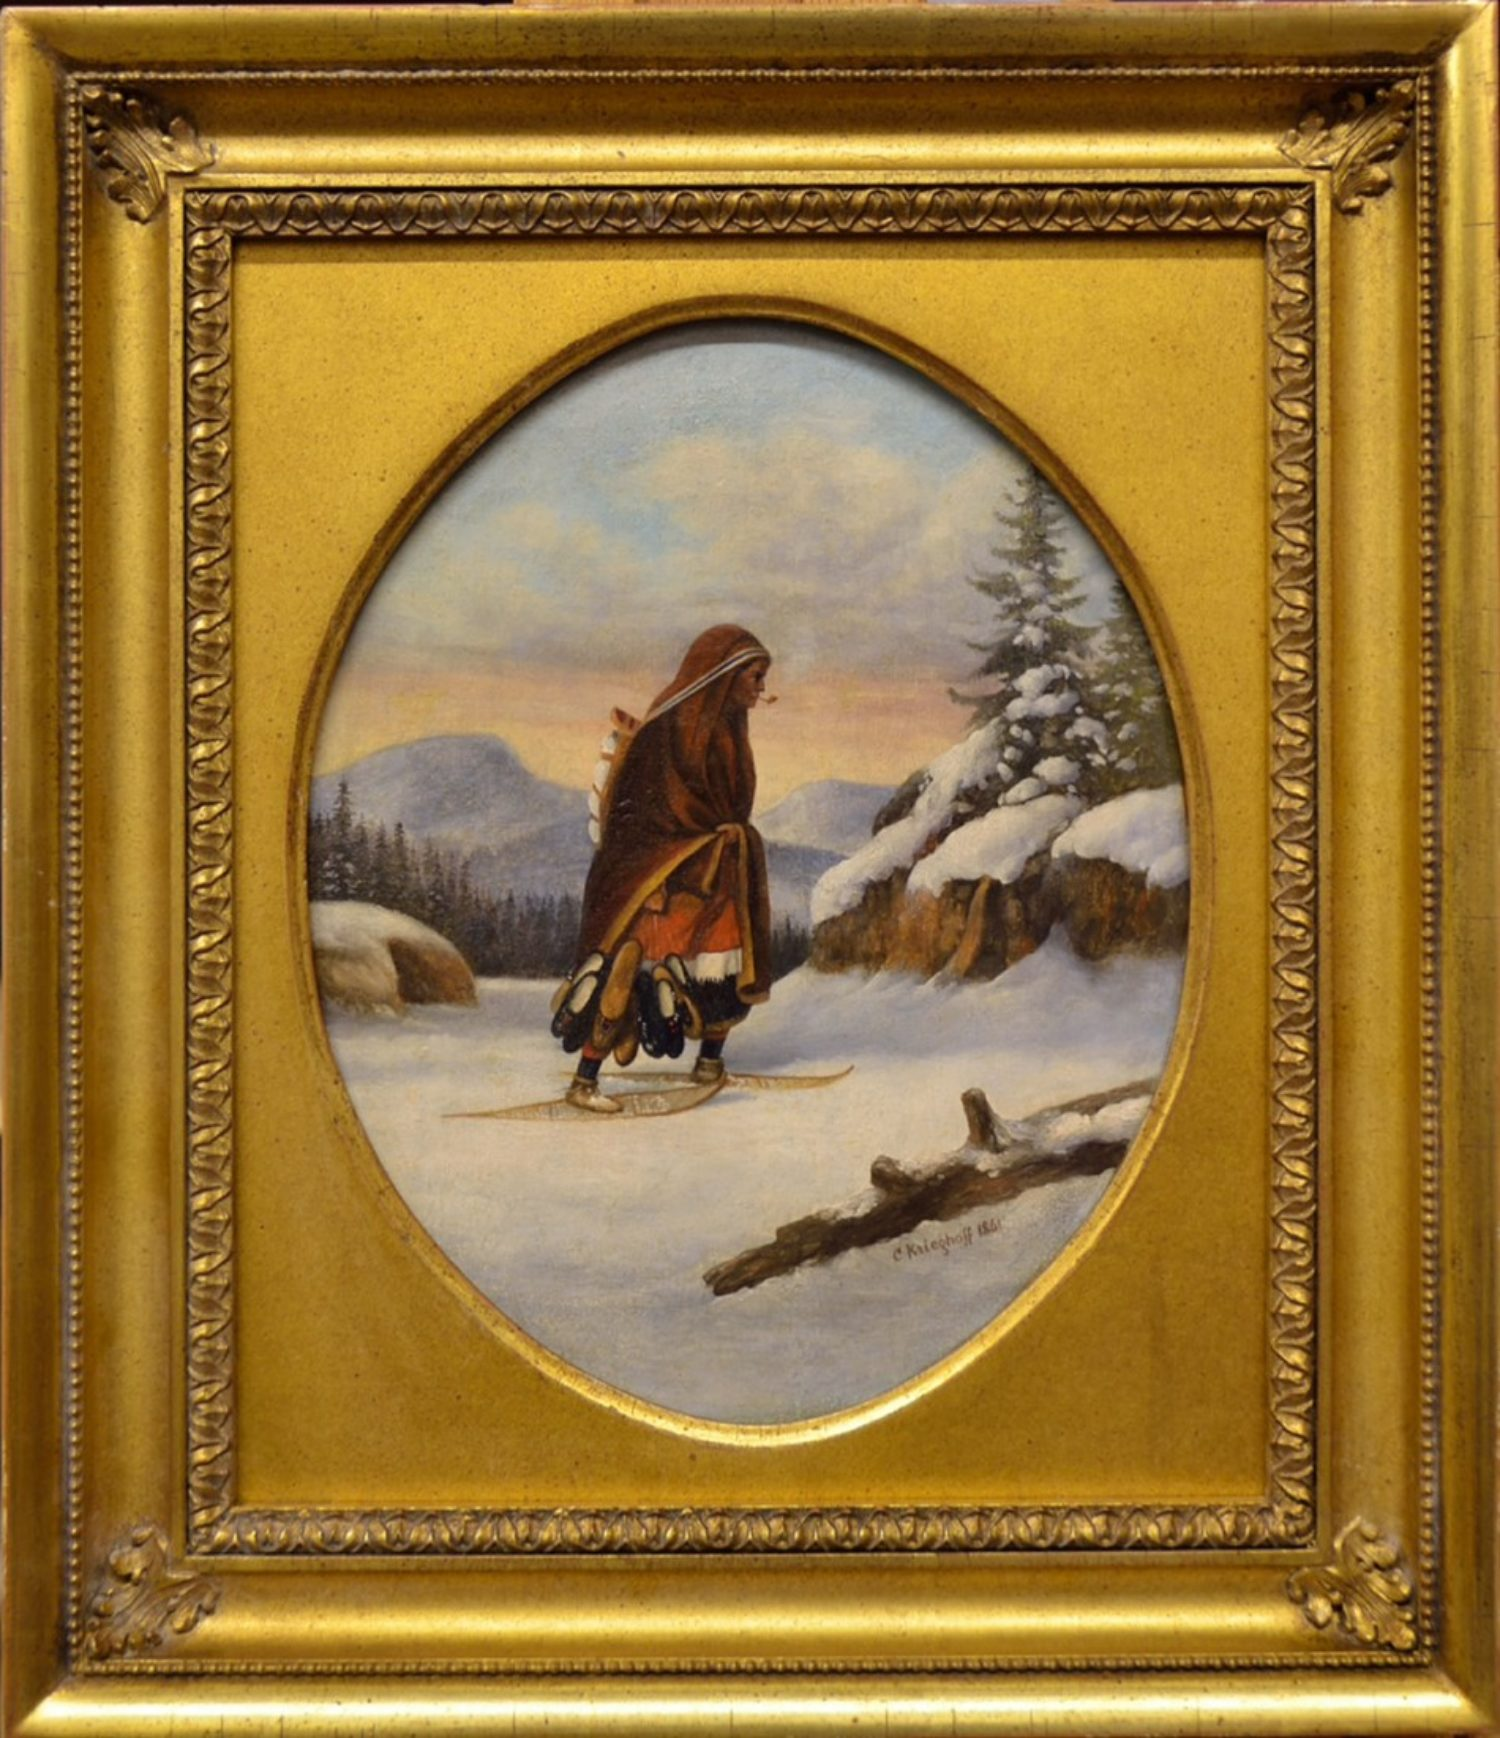 Native Woman Crossing the Snow with Trade Goods